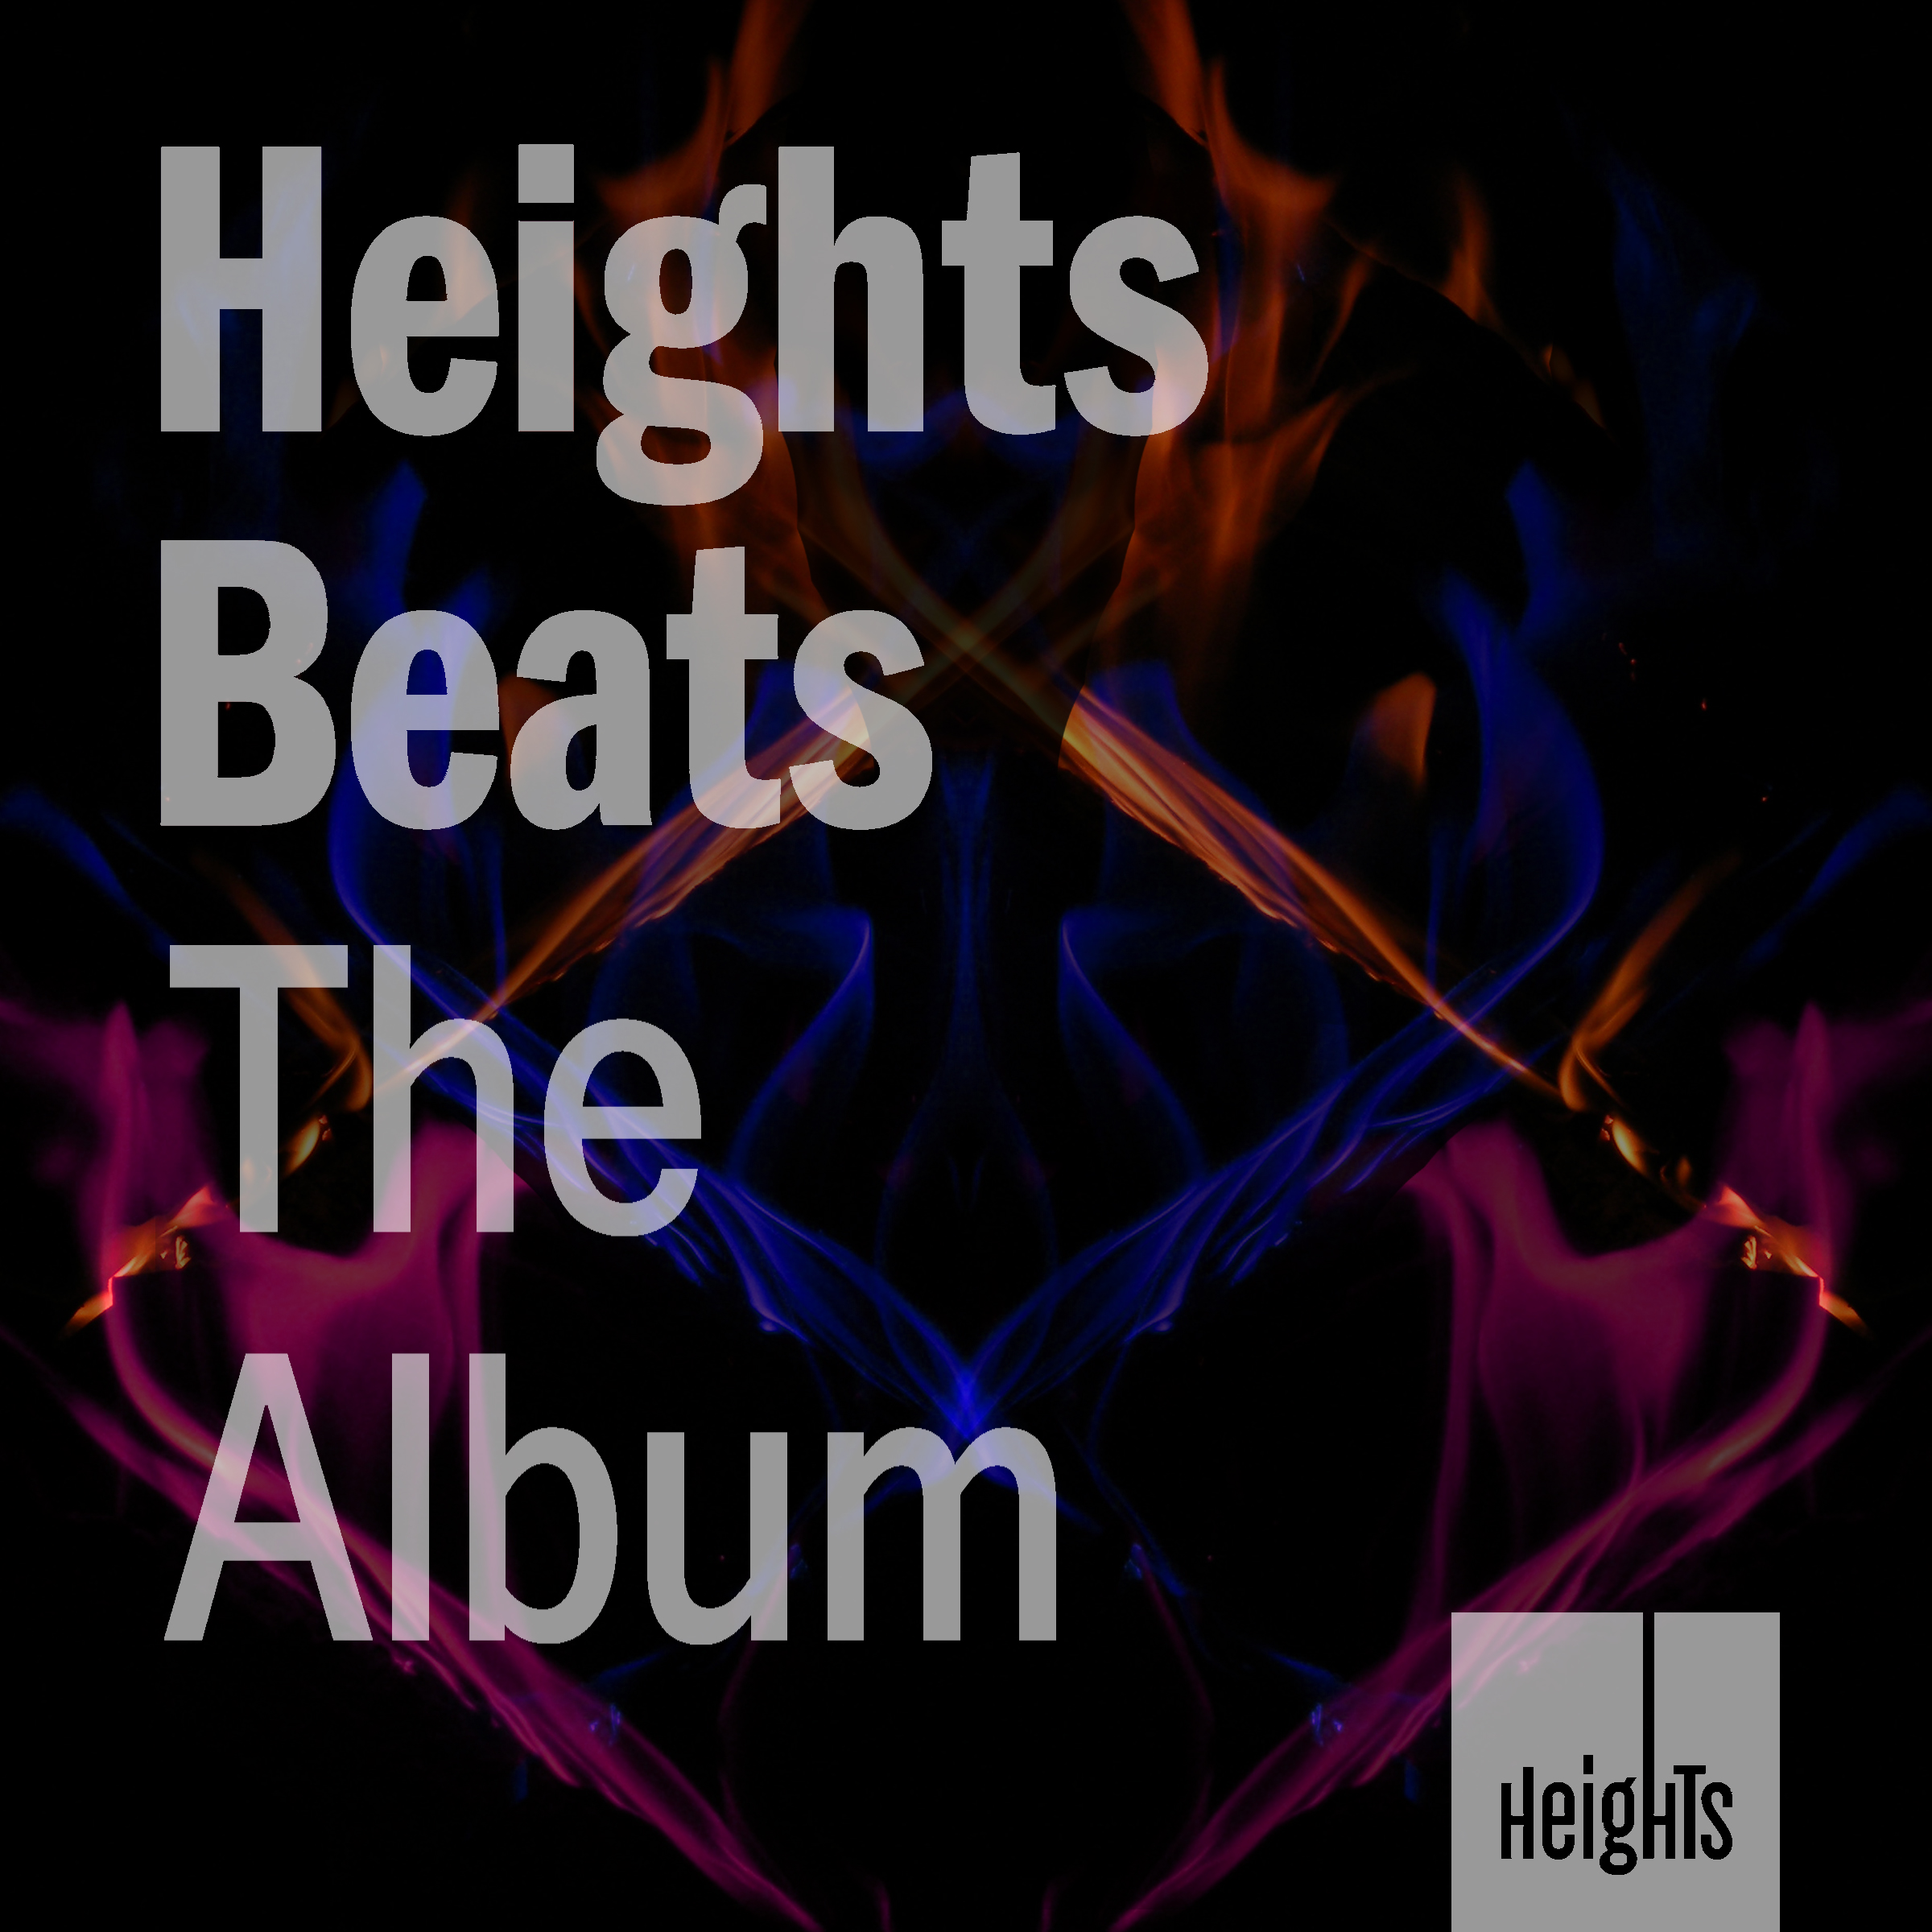 Heights Beats The Album.jpg